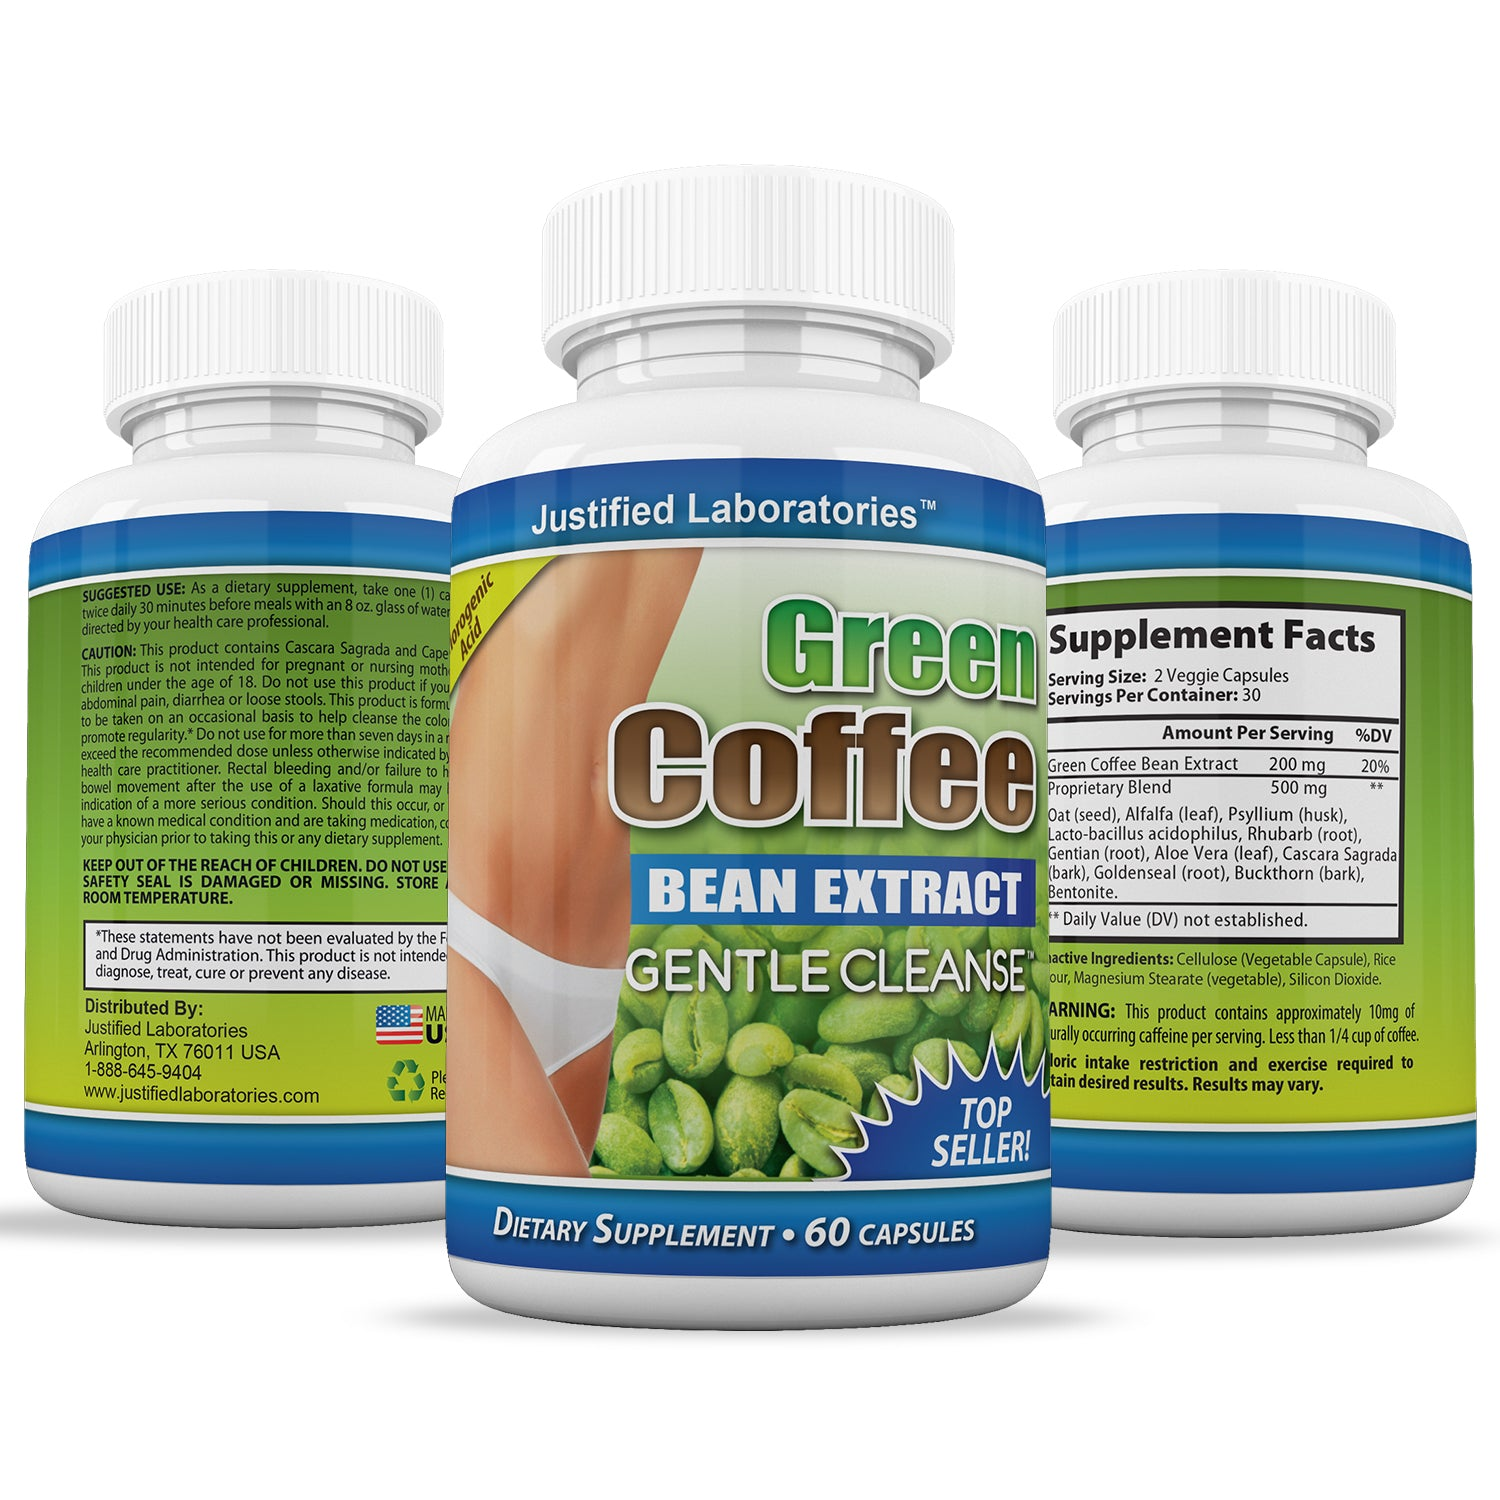 Pure Green Coffee Bean Extract Gentle Cleanse Detox Weight Loss 60